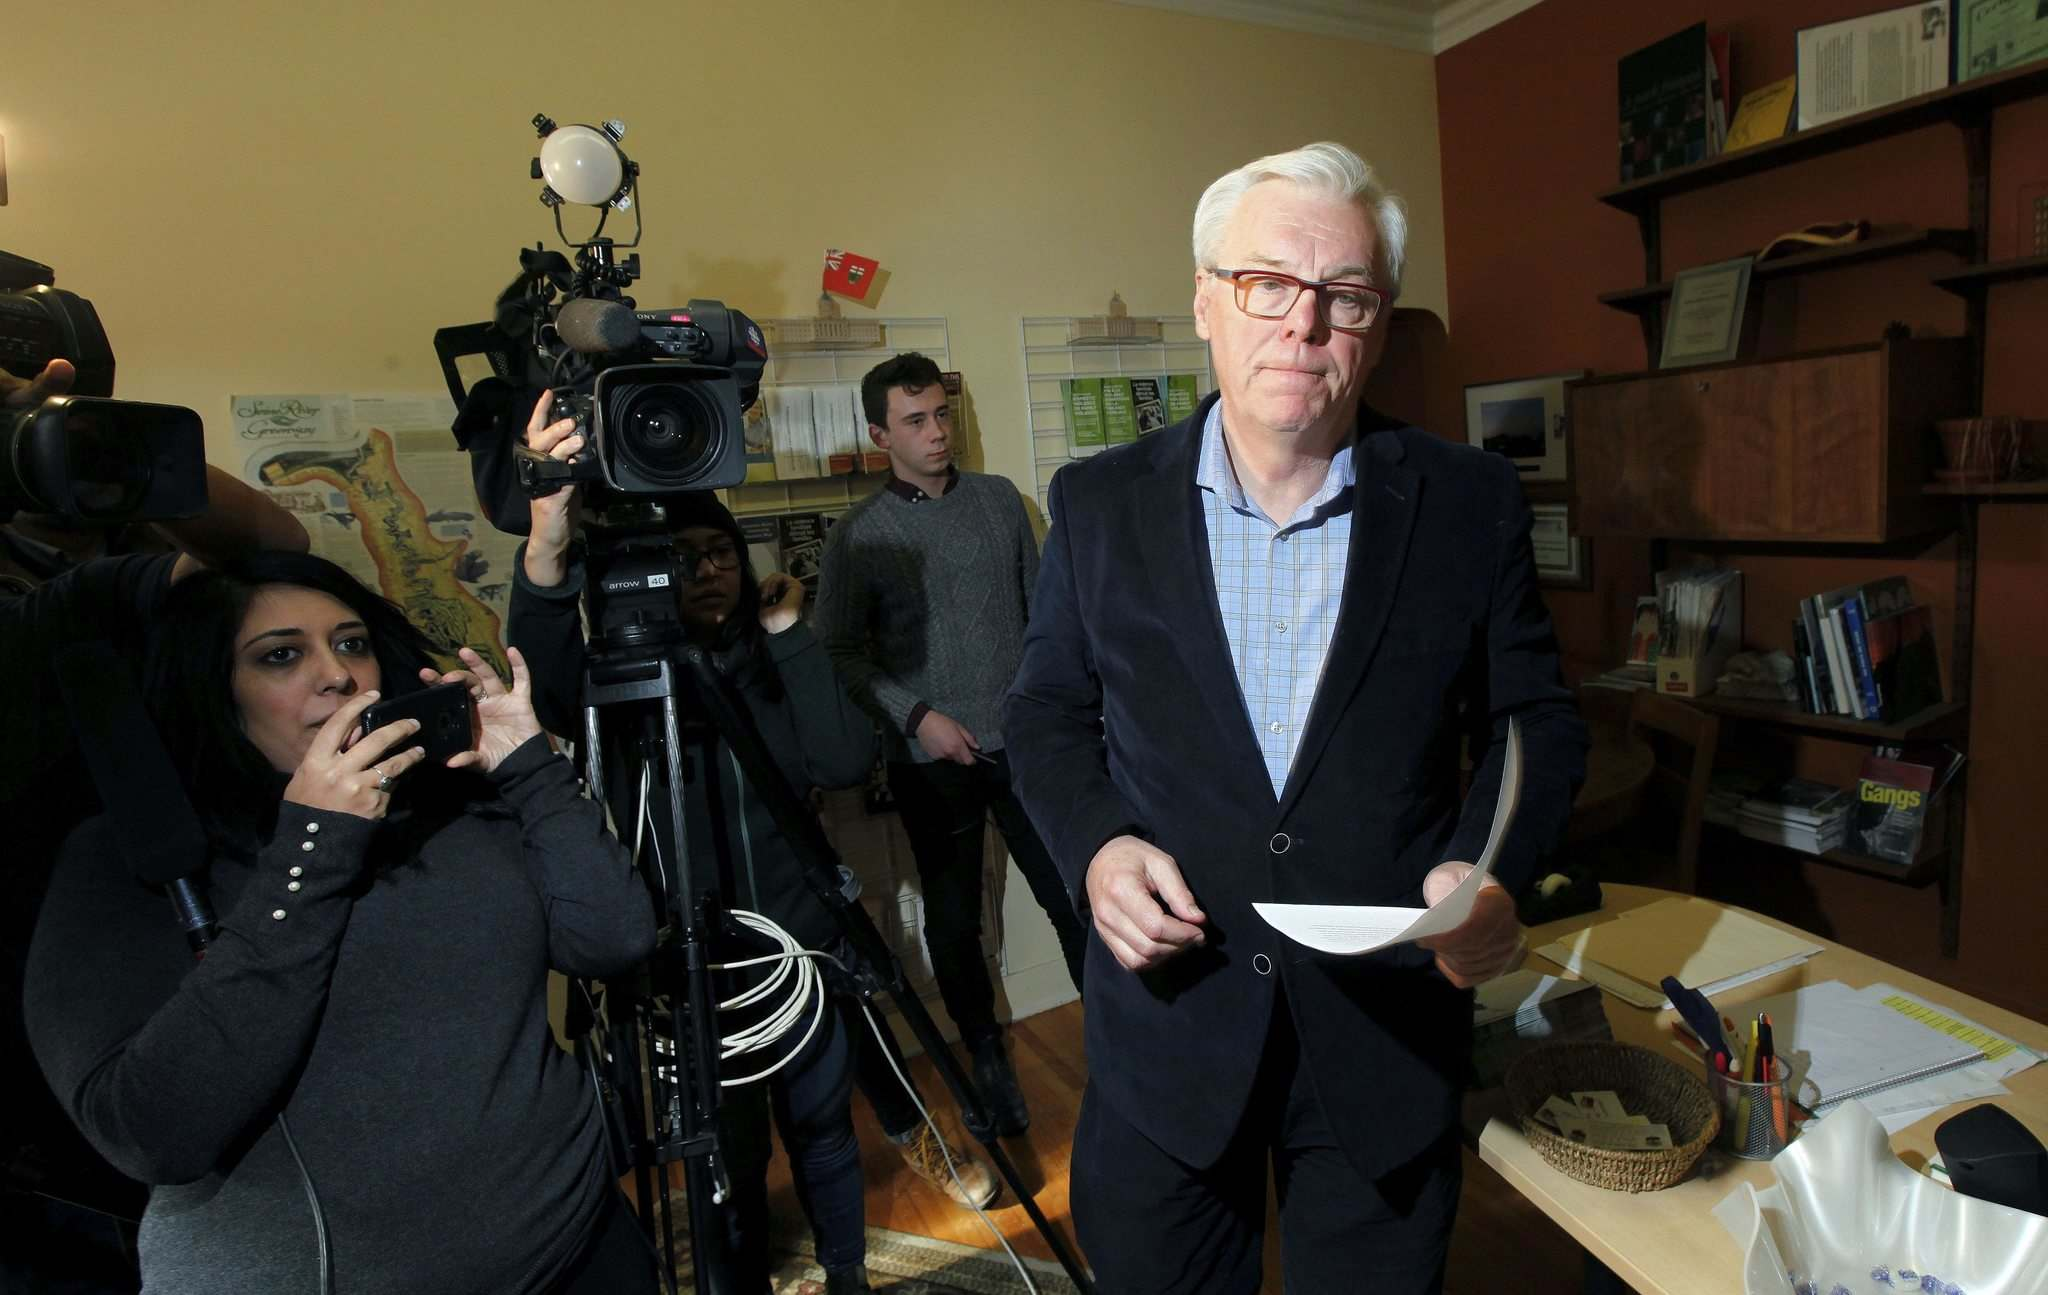 &#34;I came here to apologize and to accept responsibility for what happened on my watch,&#34; former NDP premier Greg Selinger said Tuesday. (Phil Hossack / Winnipeg Free Press)</p>